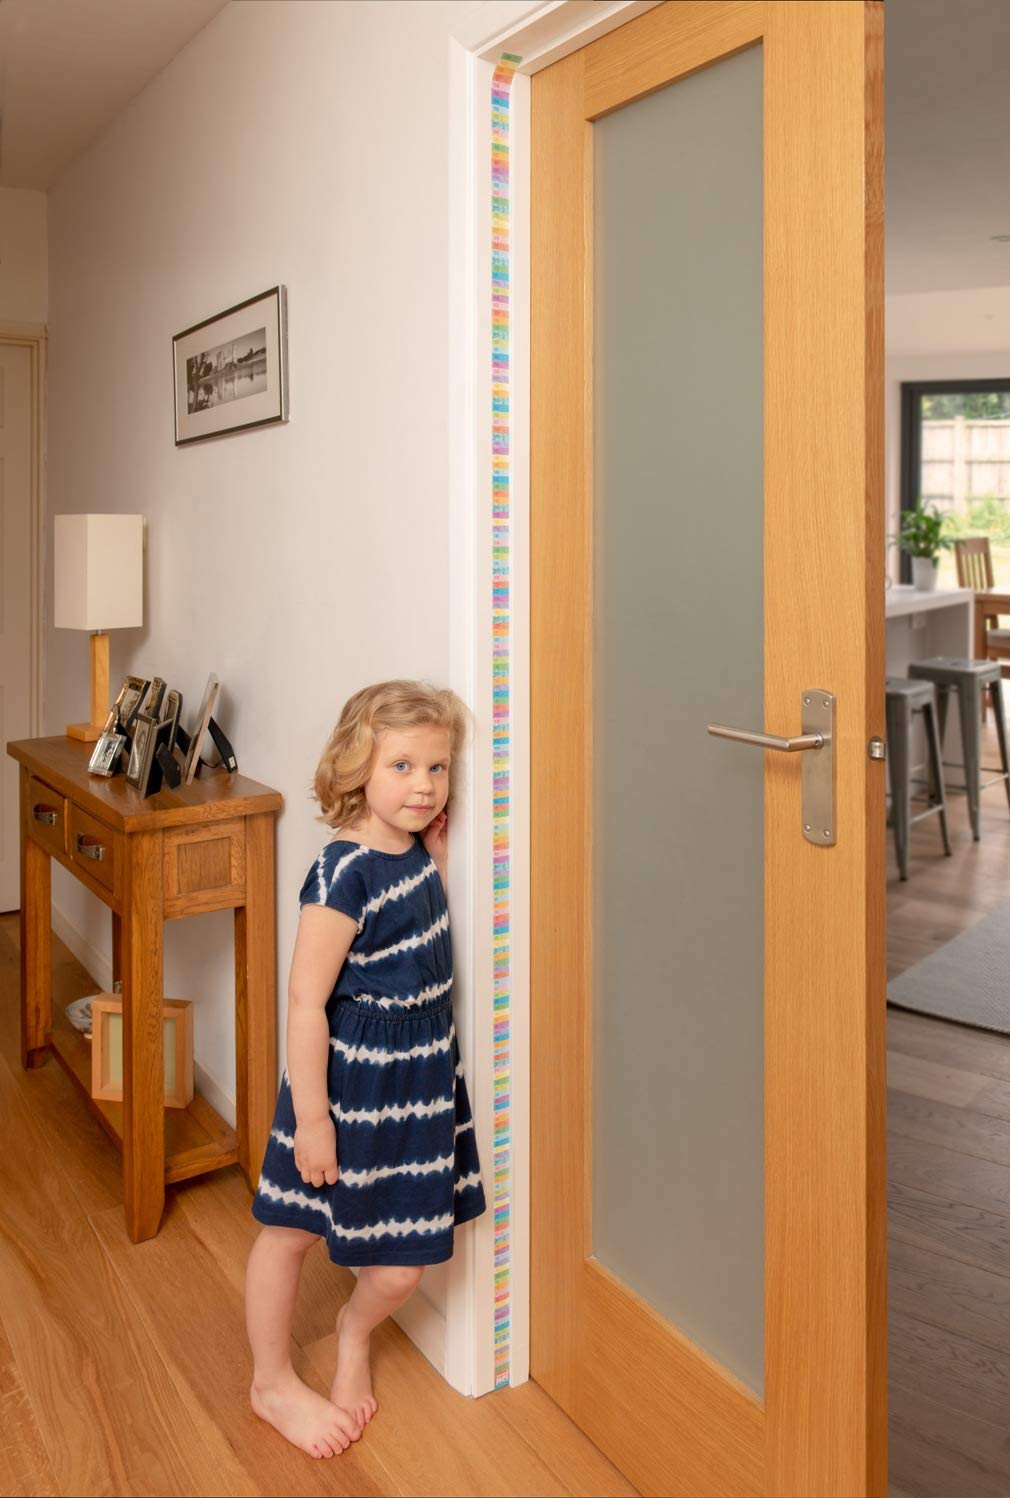 Little Wigwam Measure Me Pastel Rows Baby Roll-up Door Frame Growth Height Chart for Children Kids Room